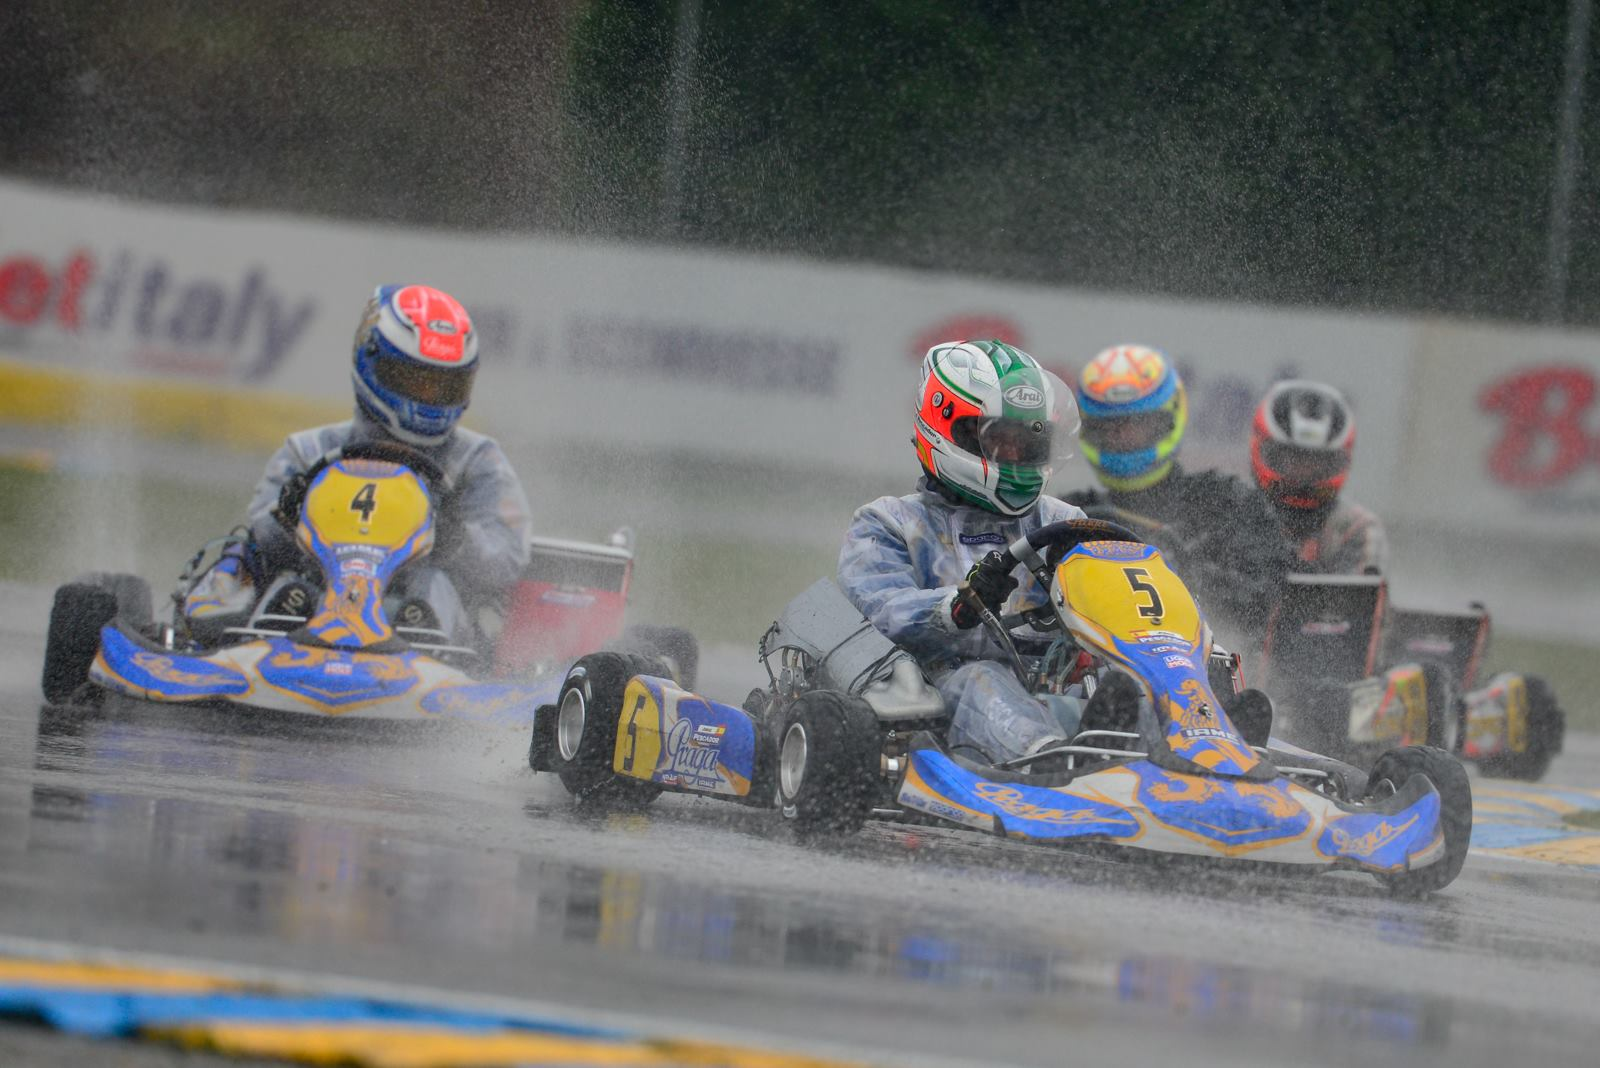 Rainy race at Castelletto - WSK Super Master series